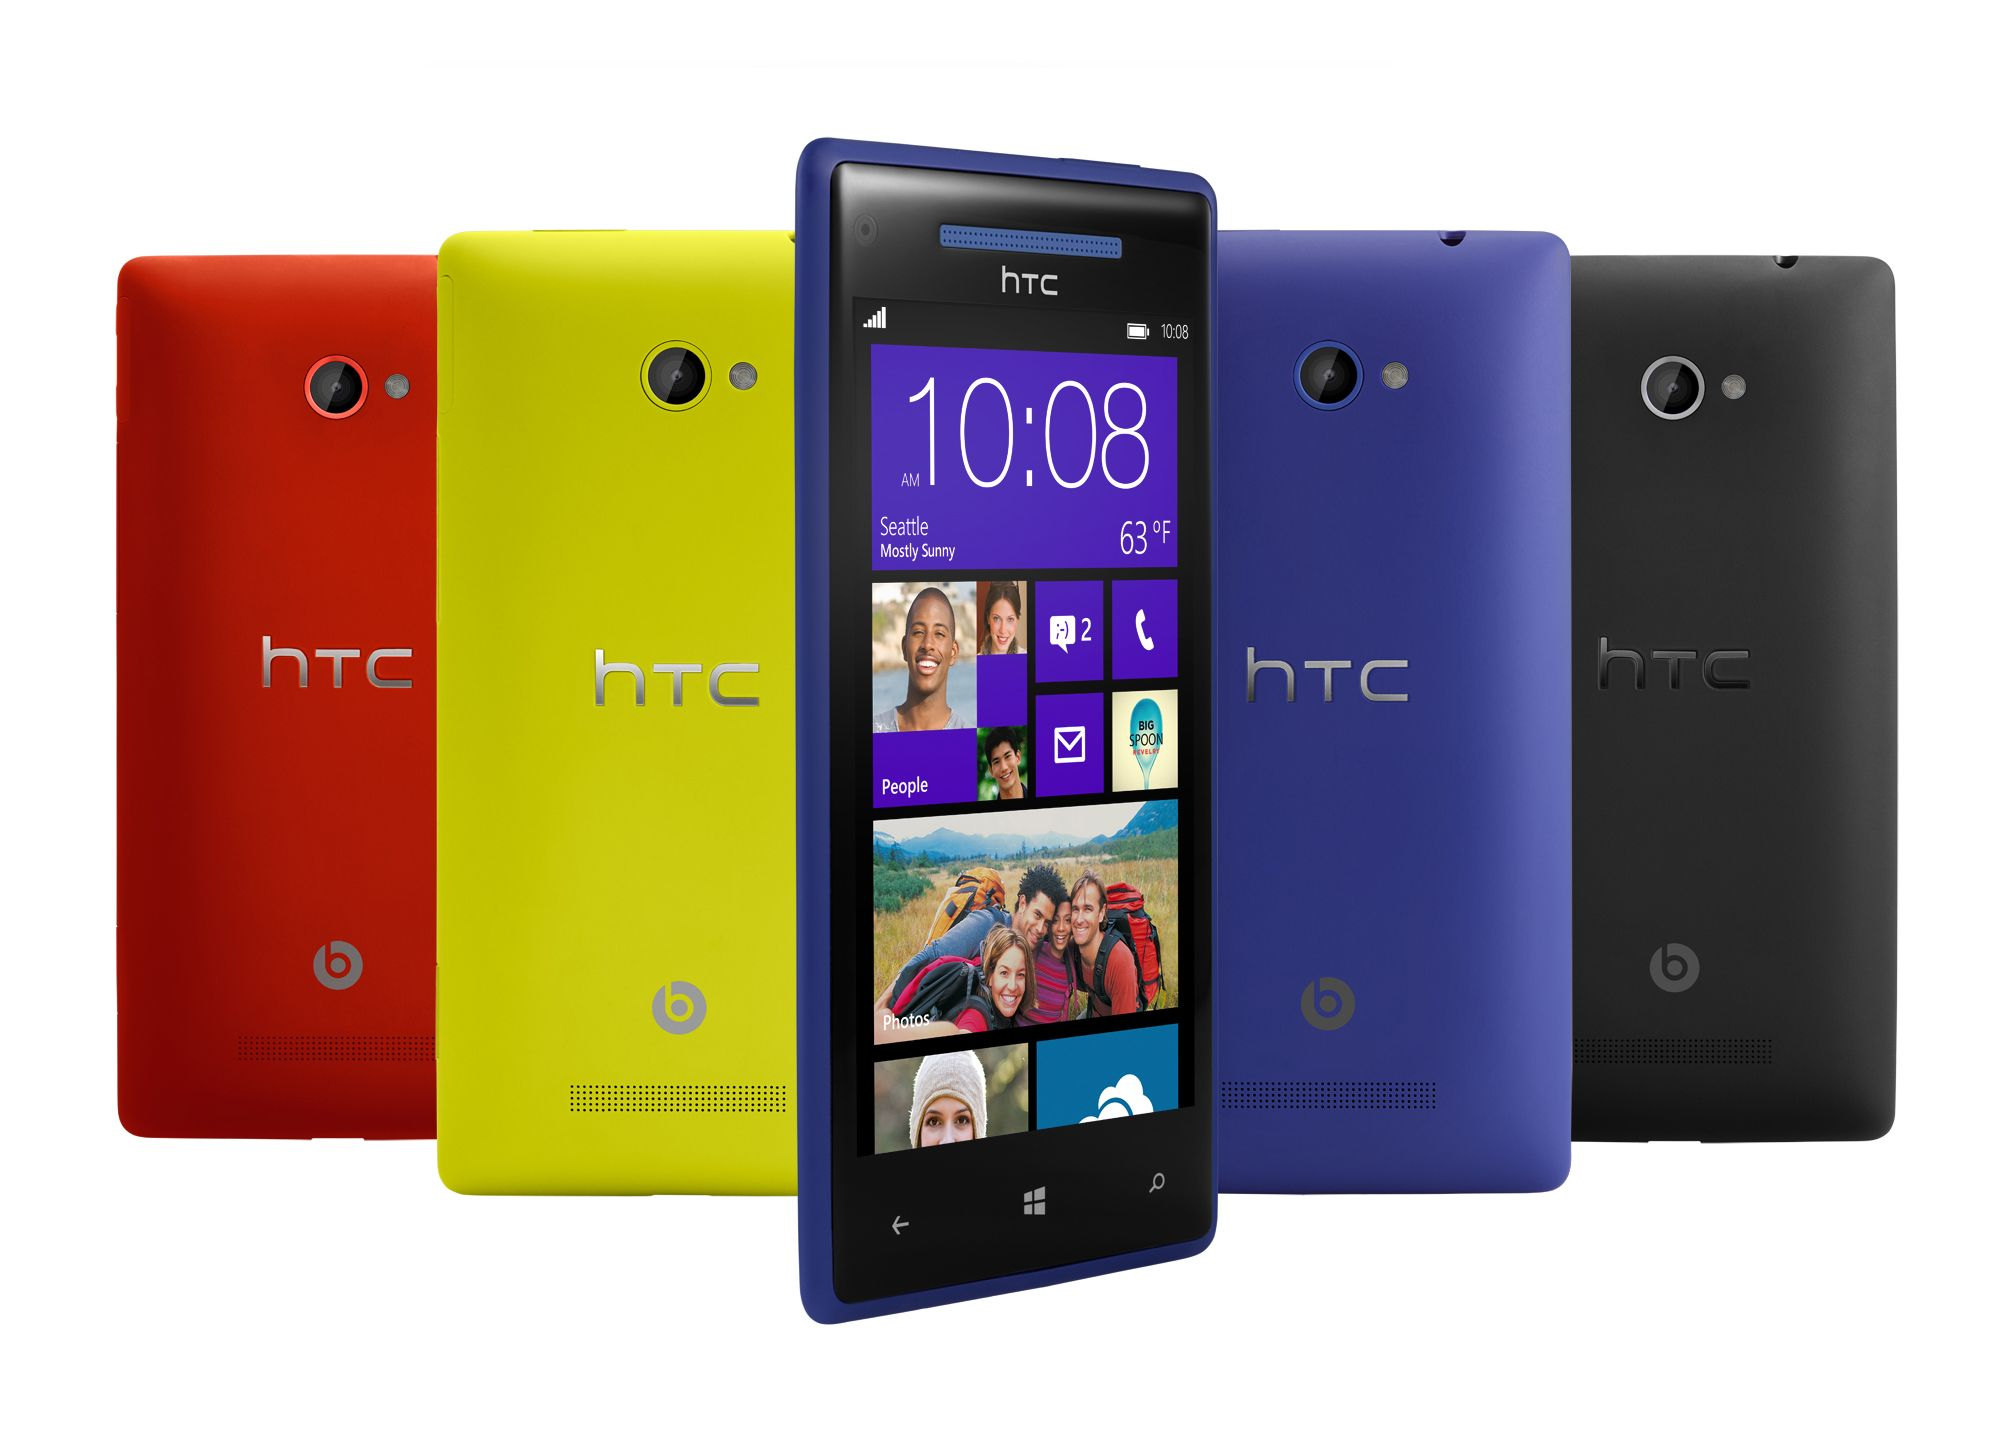 HTC Windows Phone 8X, as featured in the Microsoft 2012